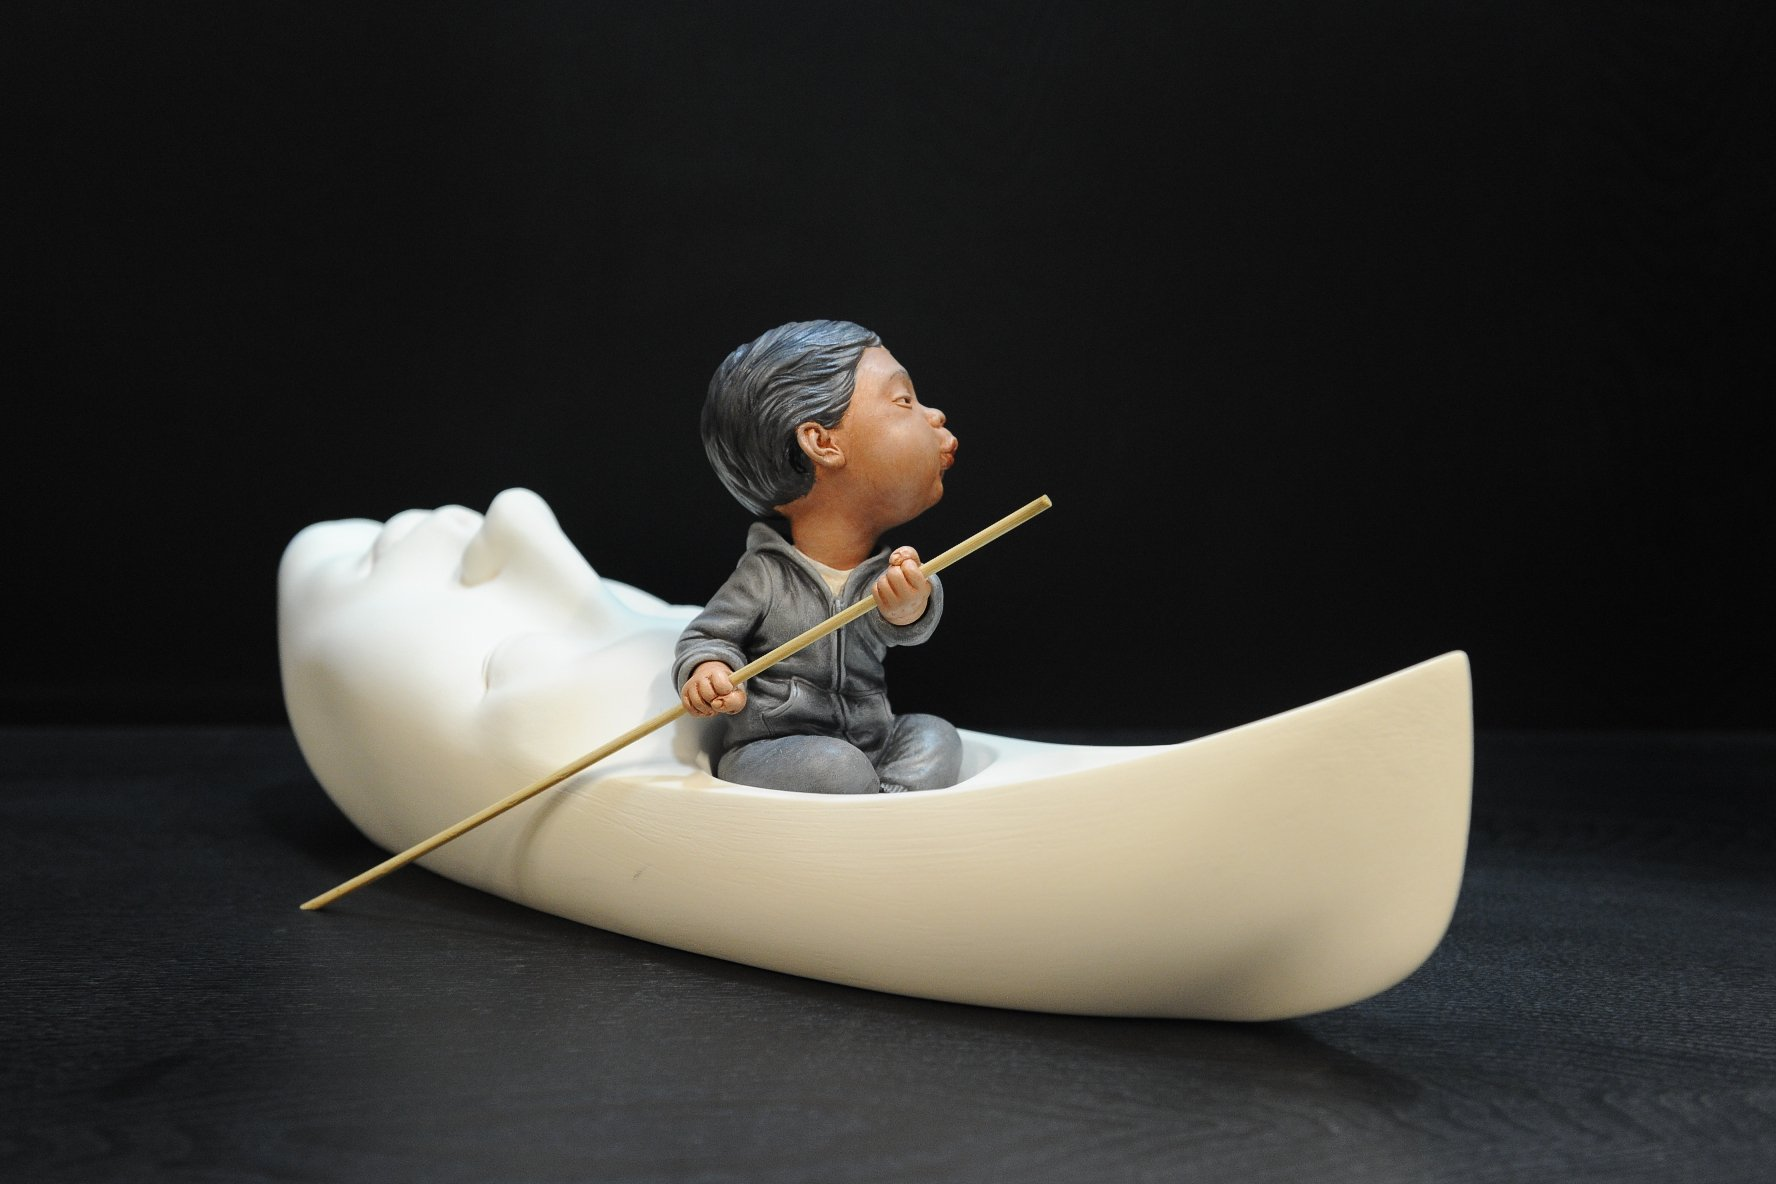 Lucid Dream Series - Relation-ship - Johnson Tsang